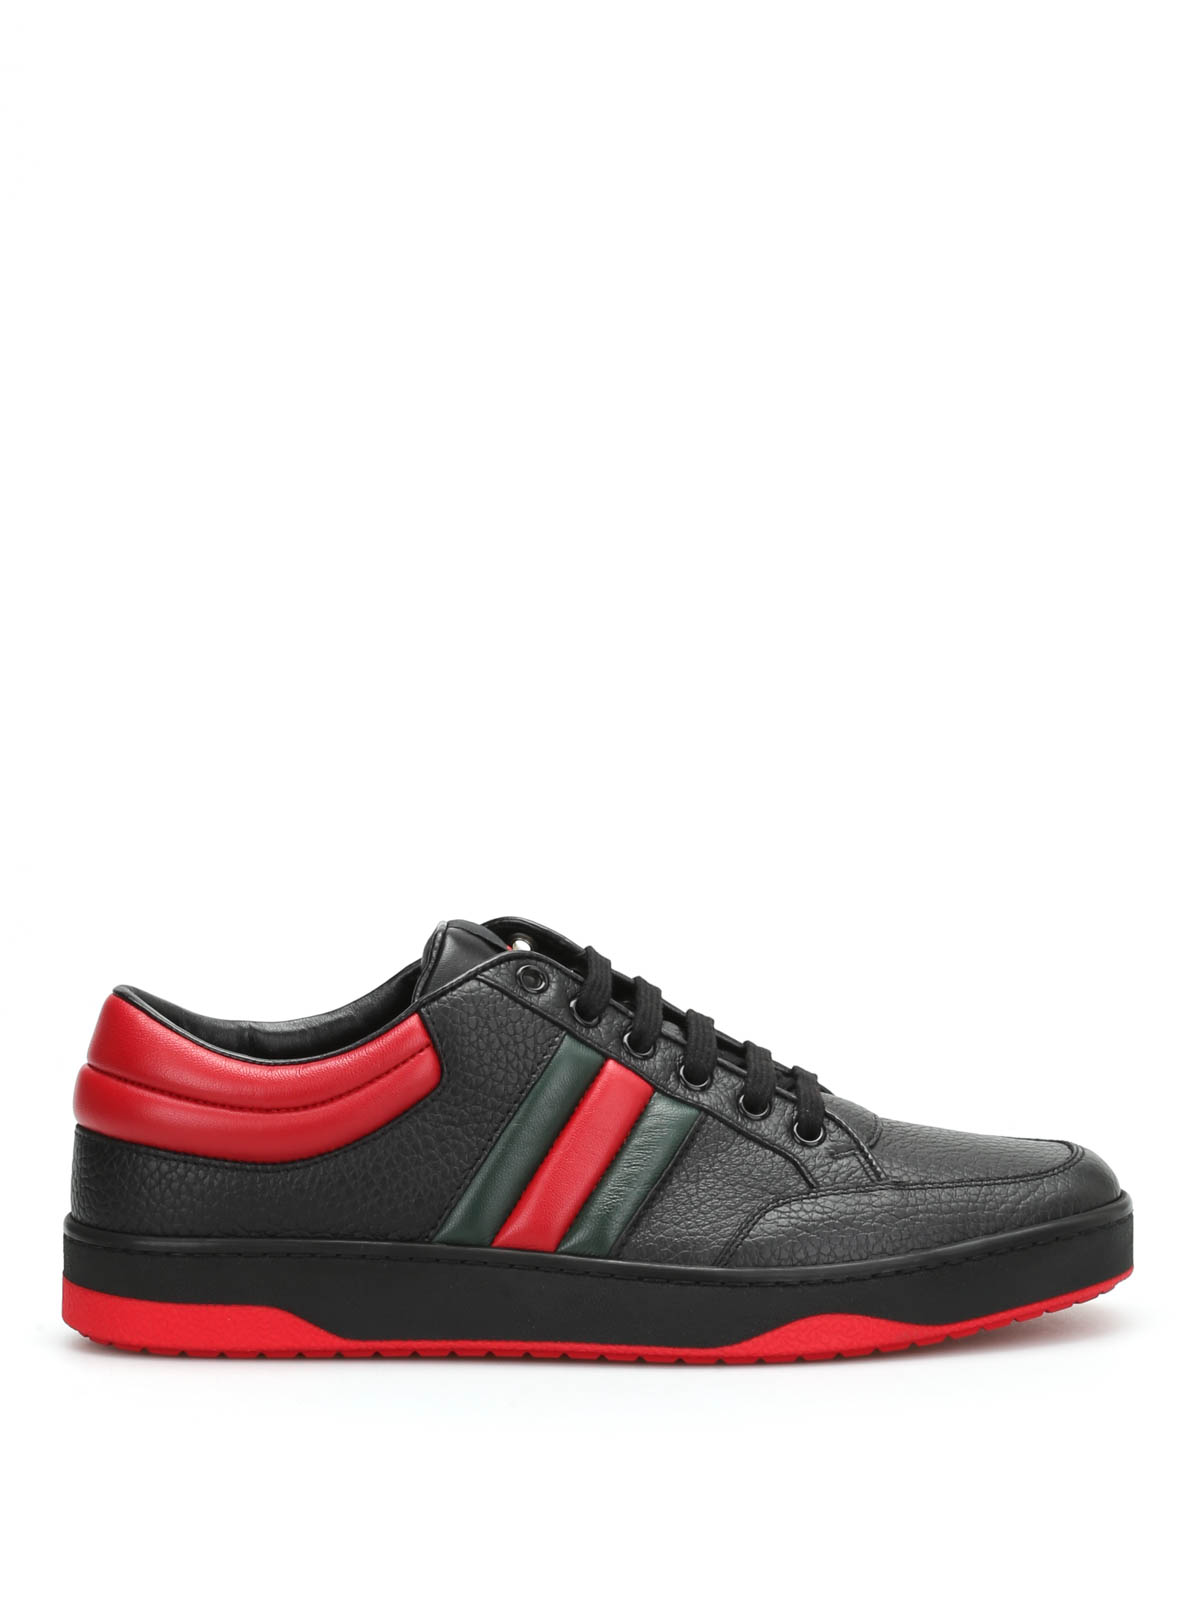 Gucci - Leather Sneakers - Trainers - 407330 Def30 1074  Ikrixcom-9393